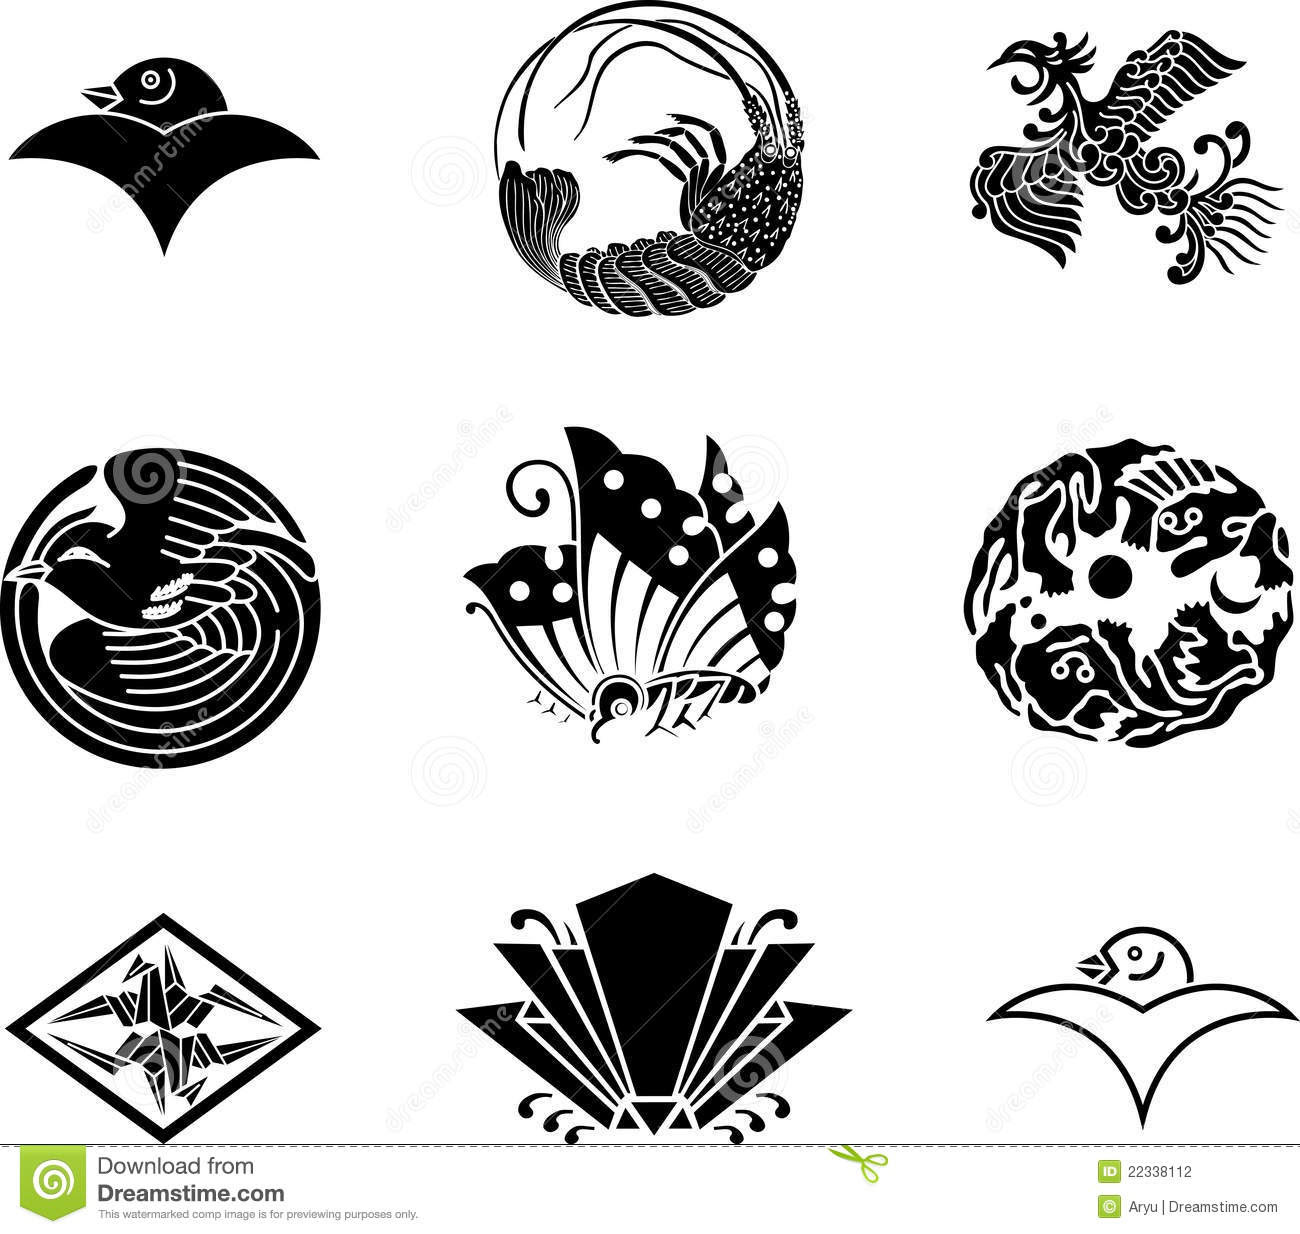 84 Chinese Symbols Tattoo Designs Meanings Designs Tattoo Chinese